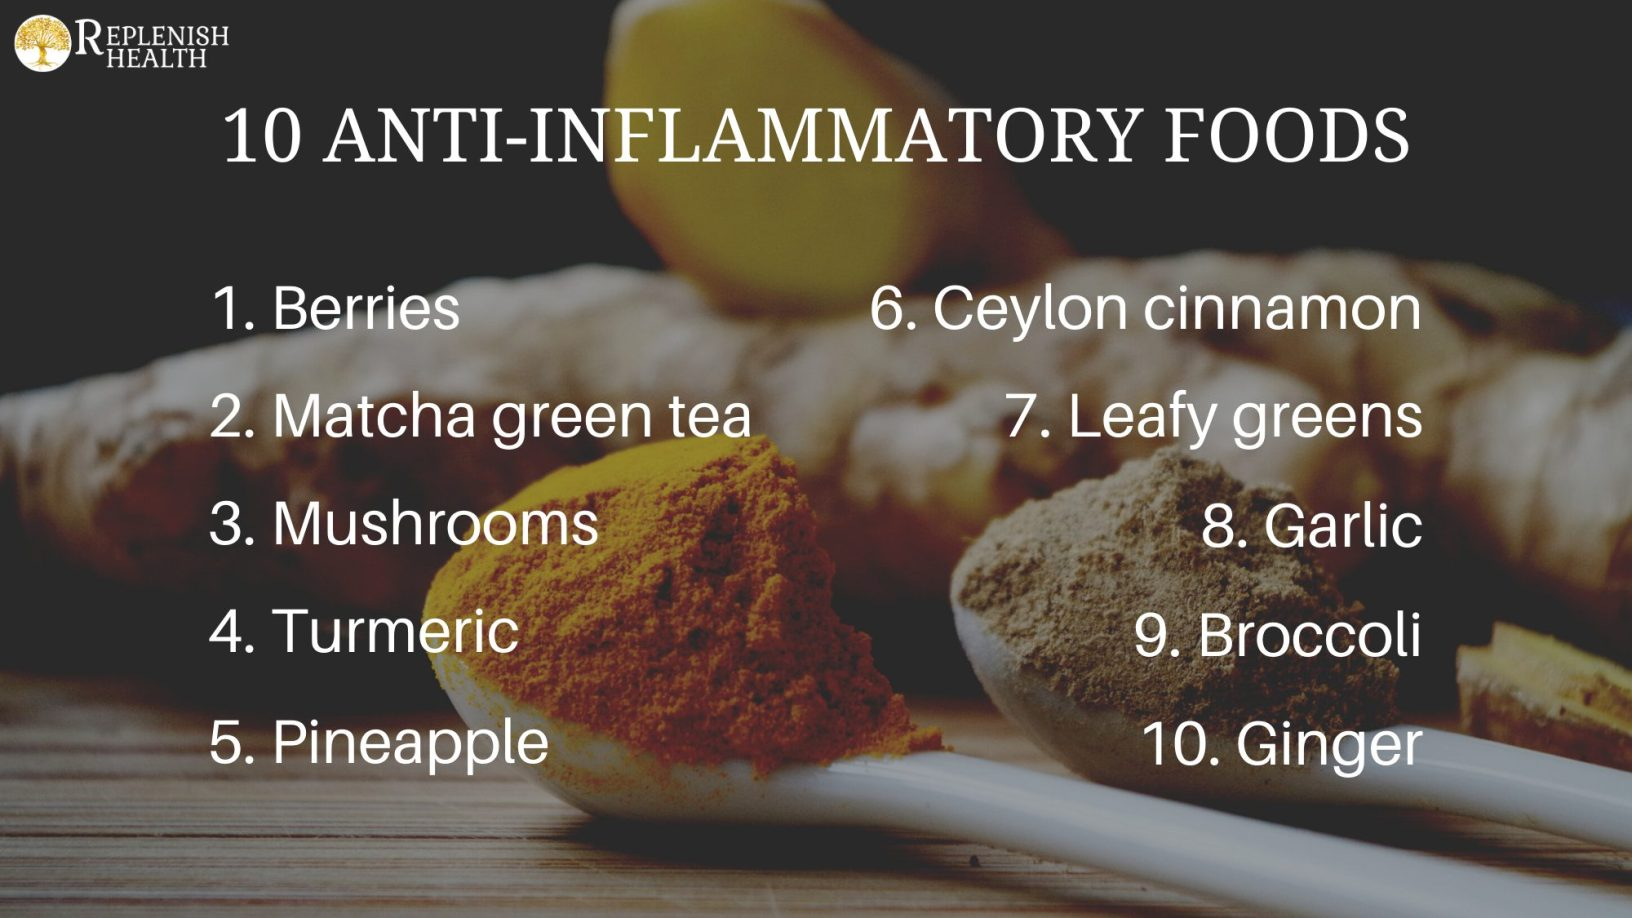 An image of 10 Anti-inflammatory Foods Printable